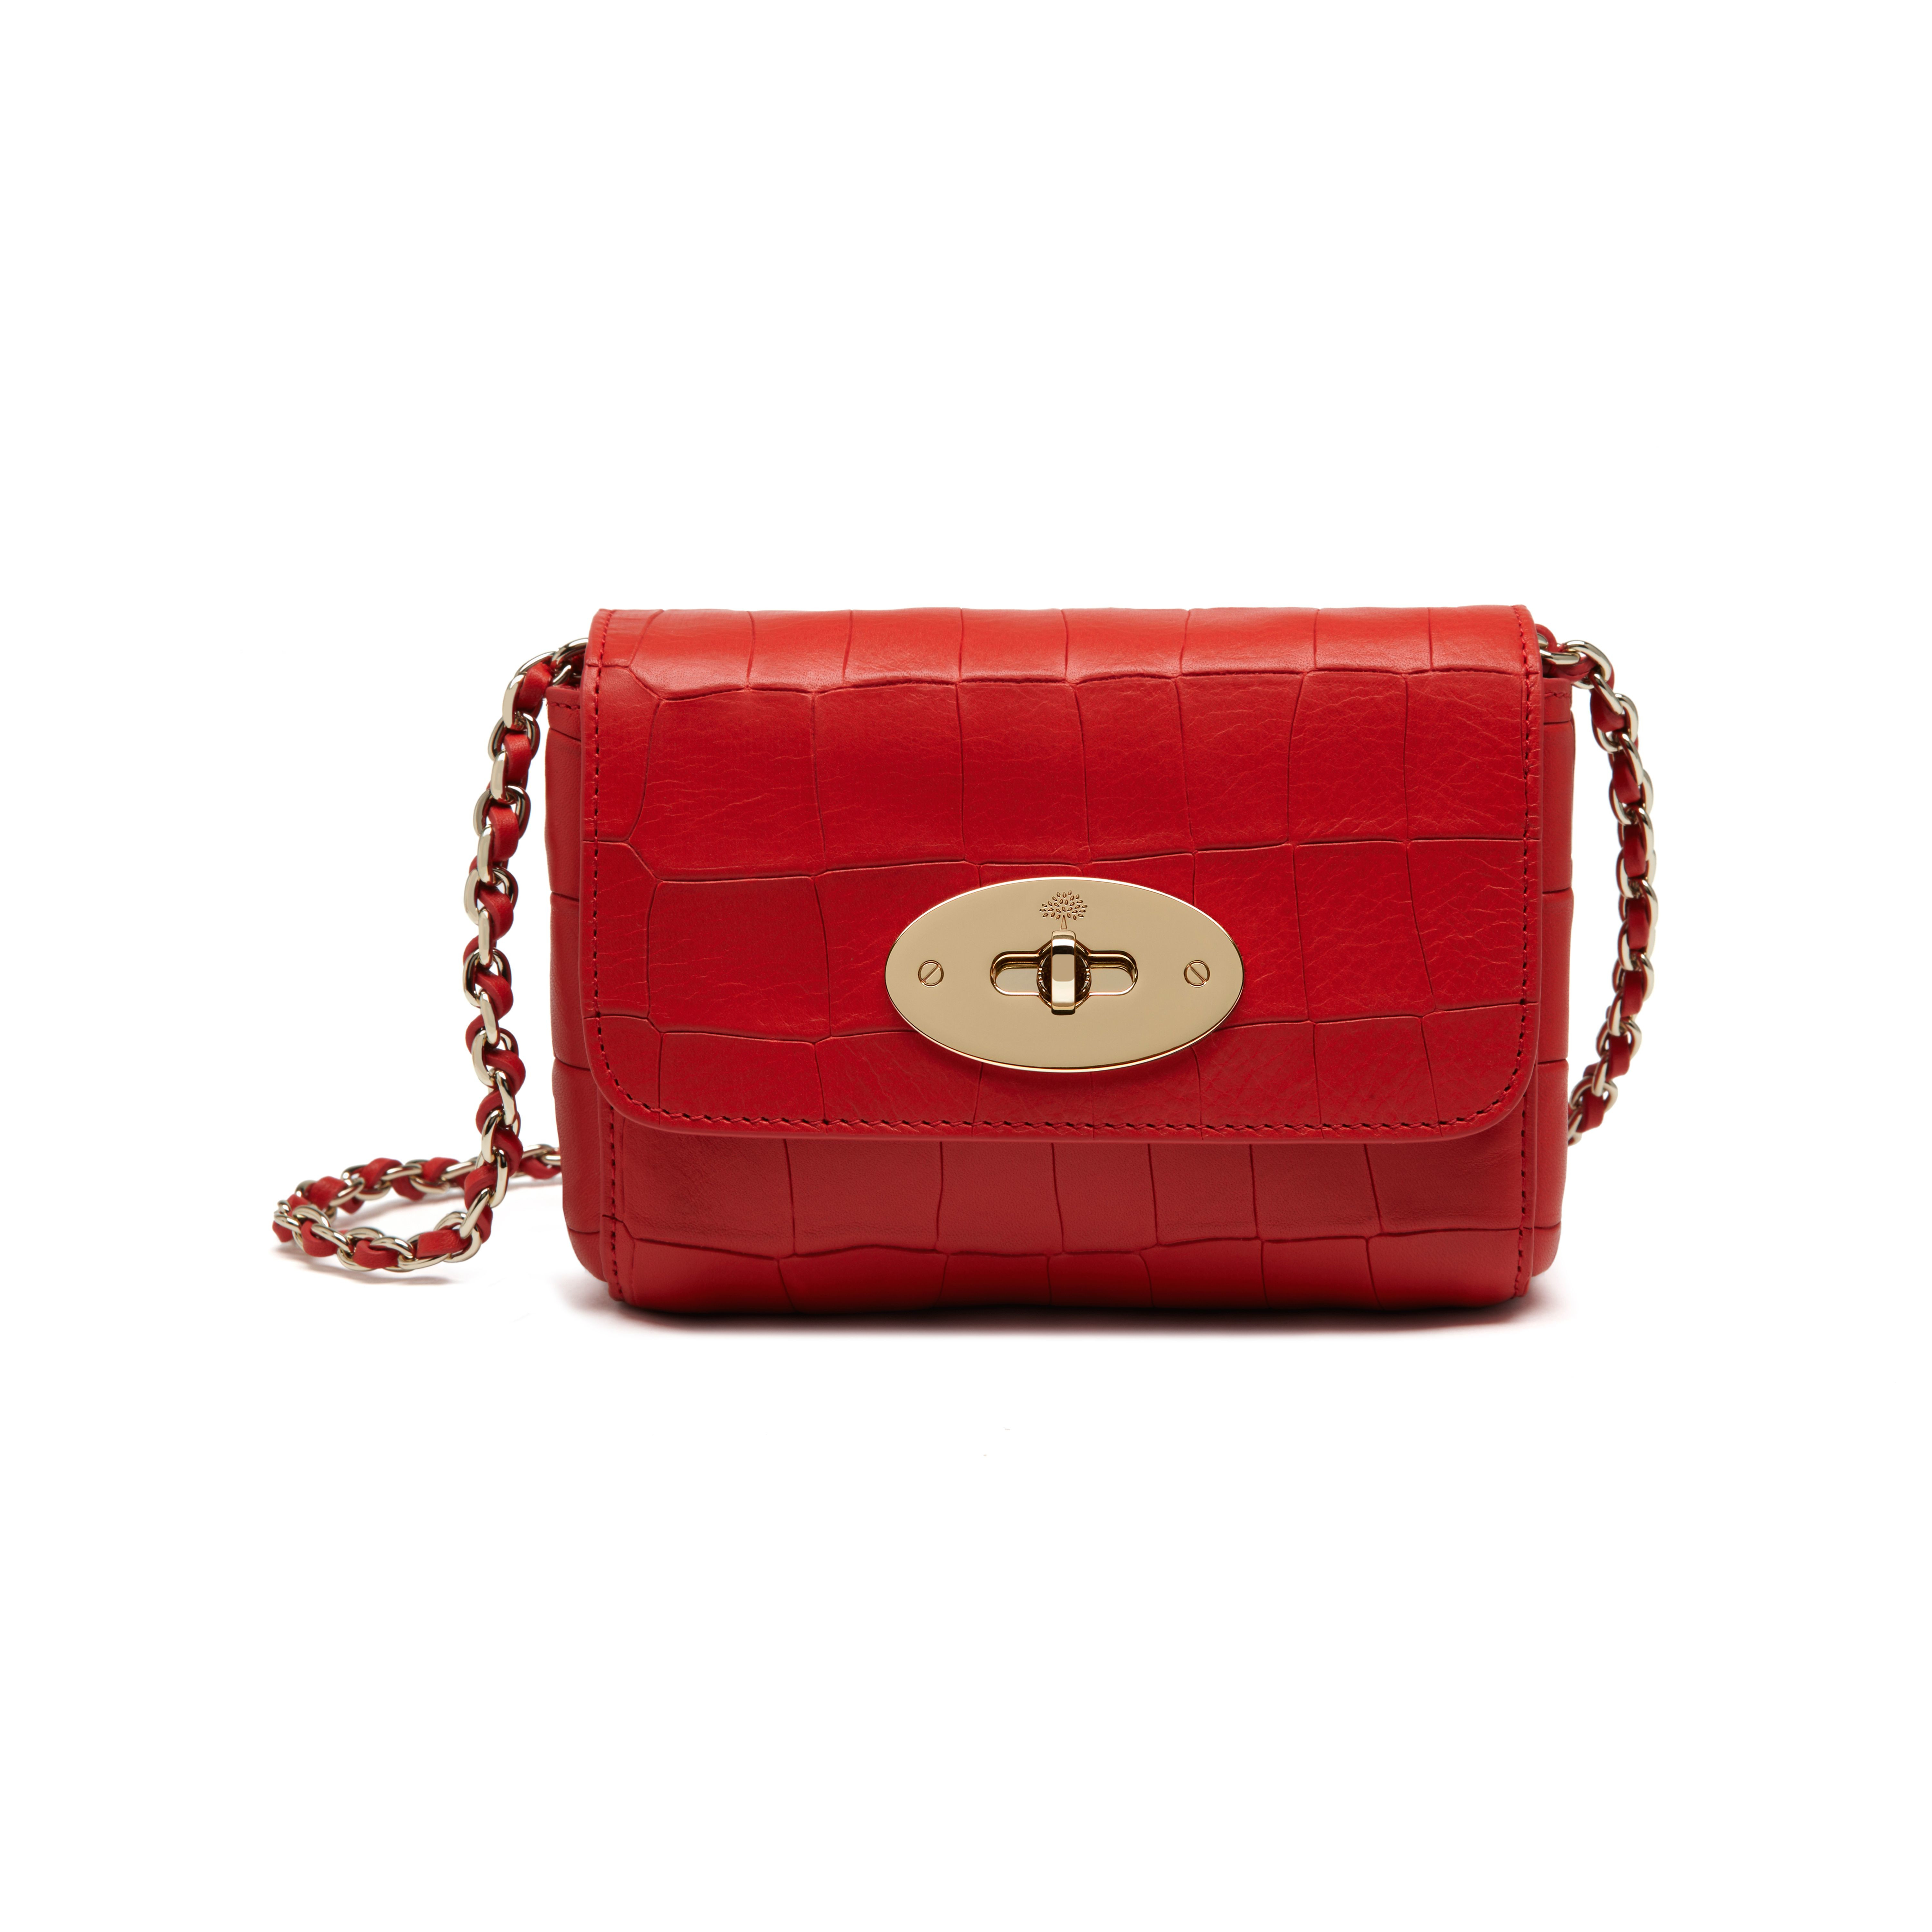 ff541e2736 Lyst - Mulberry Mini Lily Leather Bag in Red